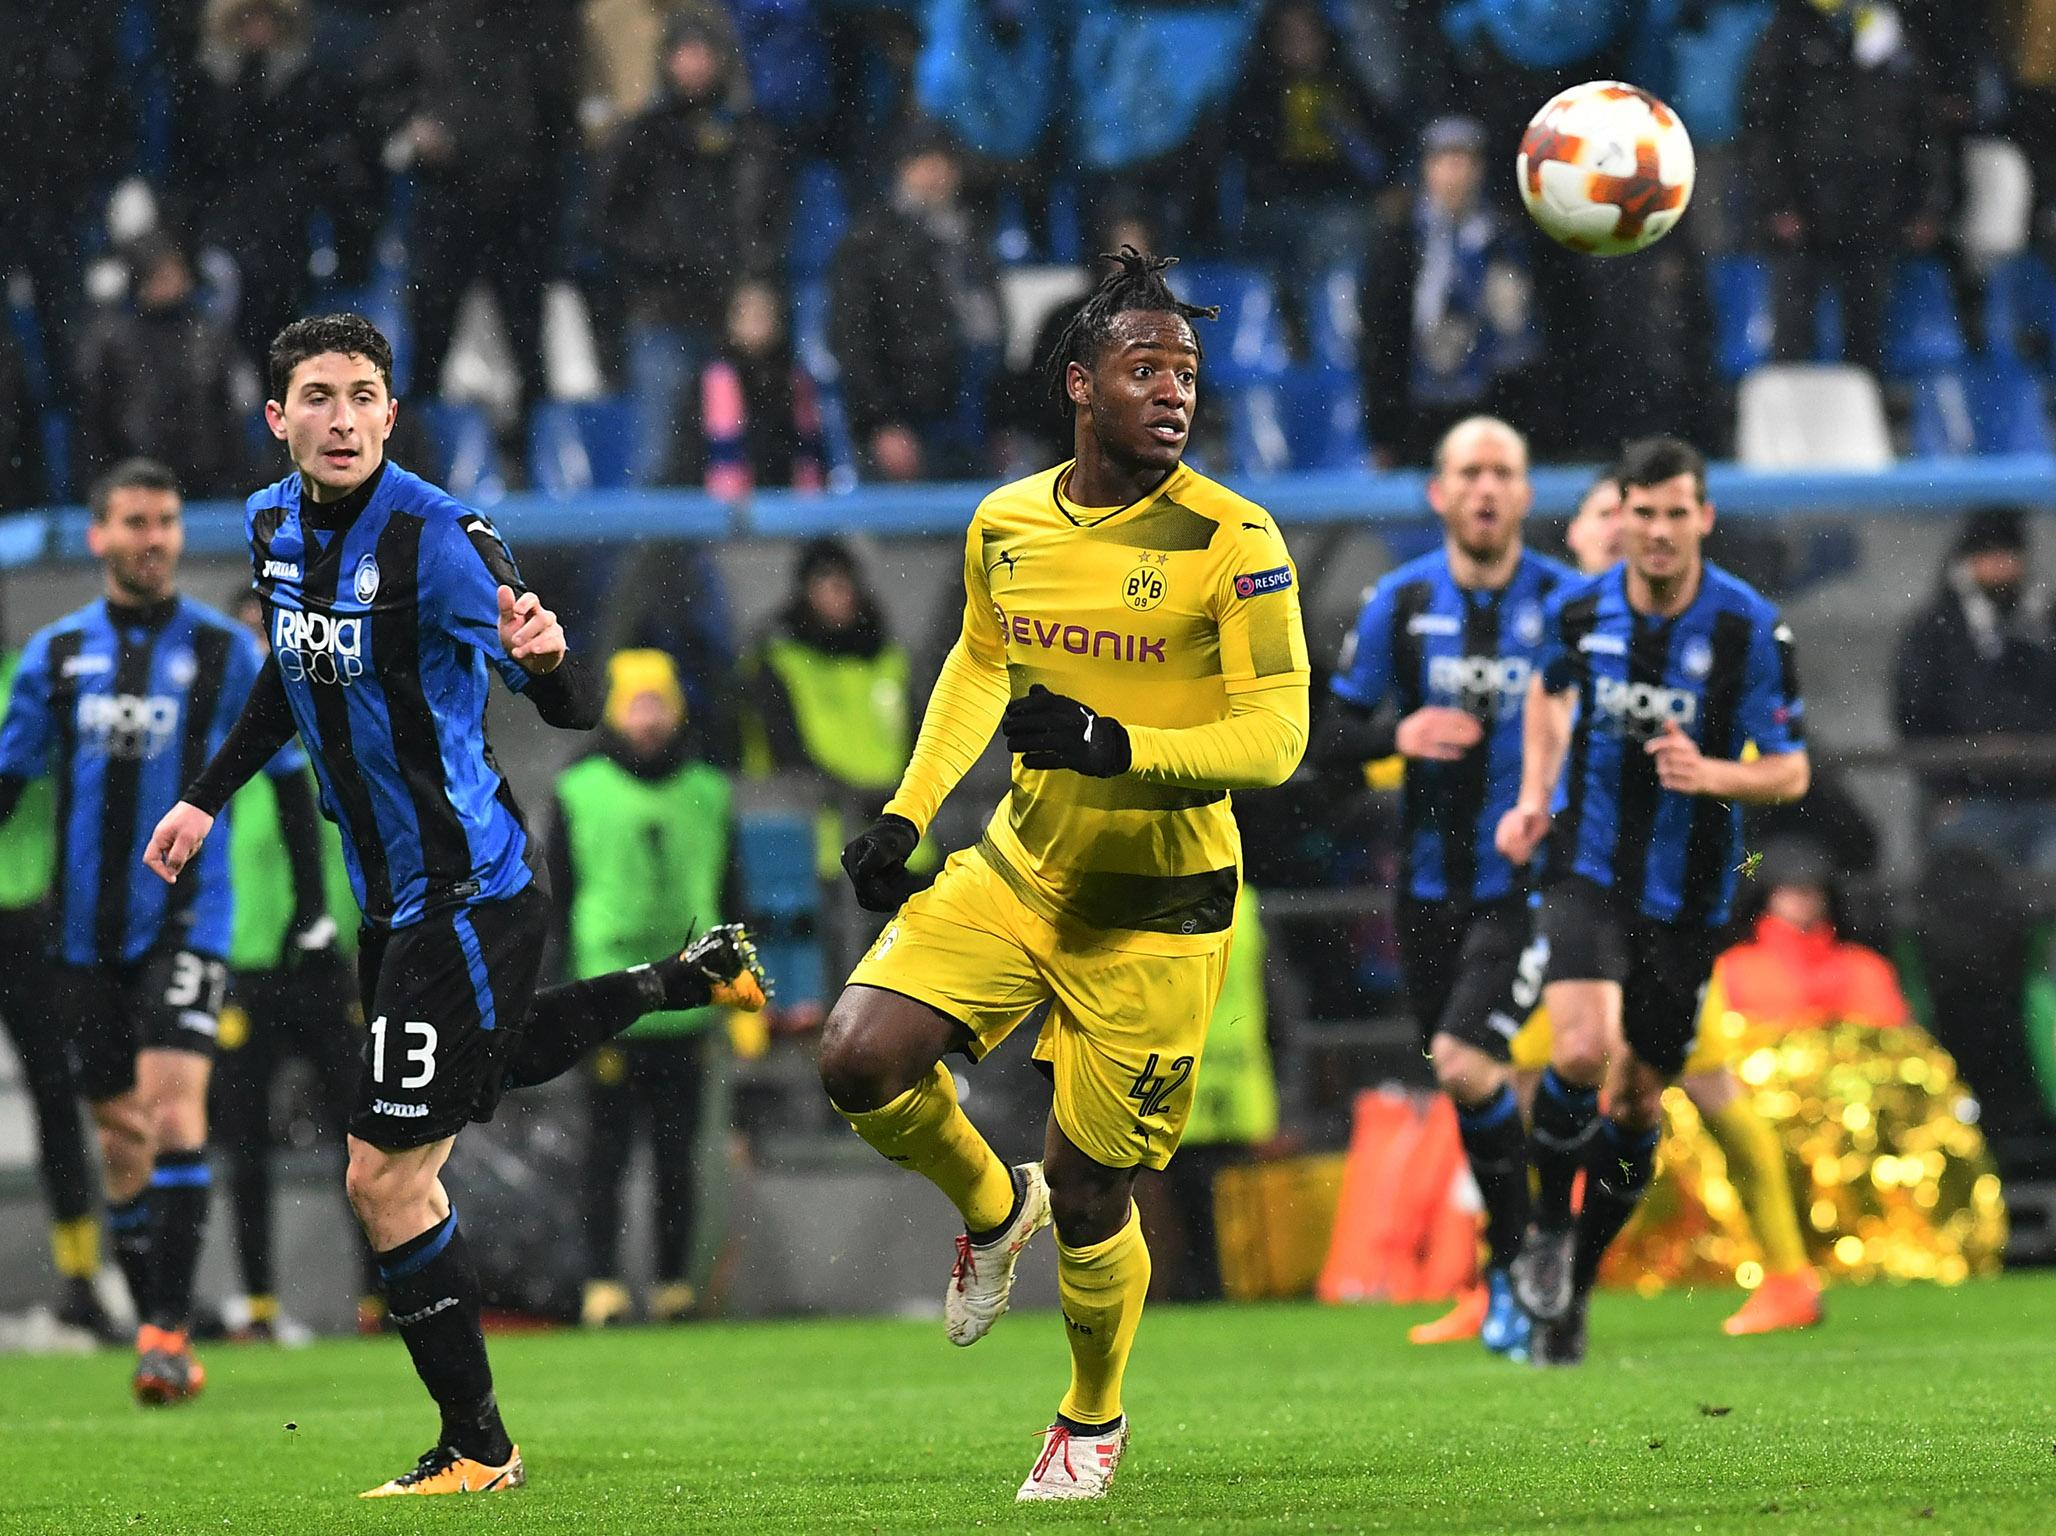 Dortmund's Michy Batshuayi claims he was subjected to 'monkey noises' from Atalanta fans in Europa League draw